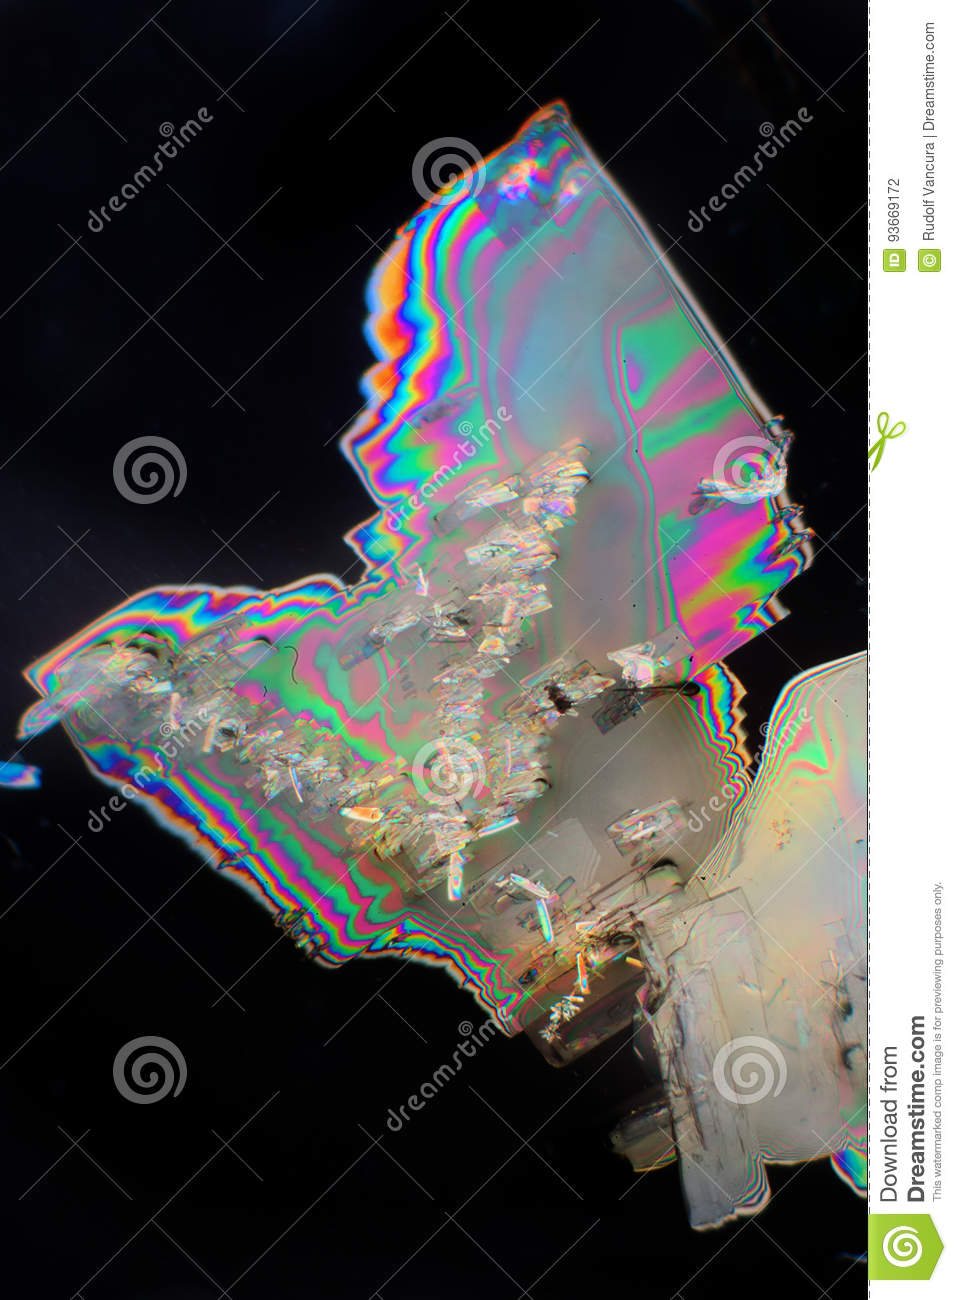 hight resolution of potassium aluminum crystals under the microscope in polarized light